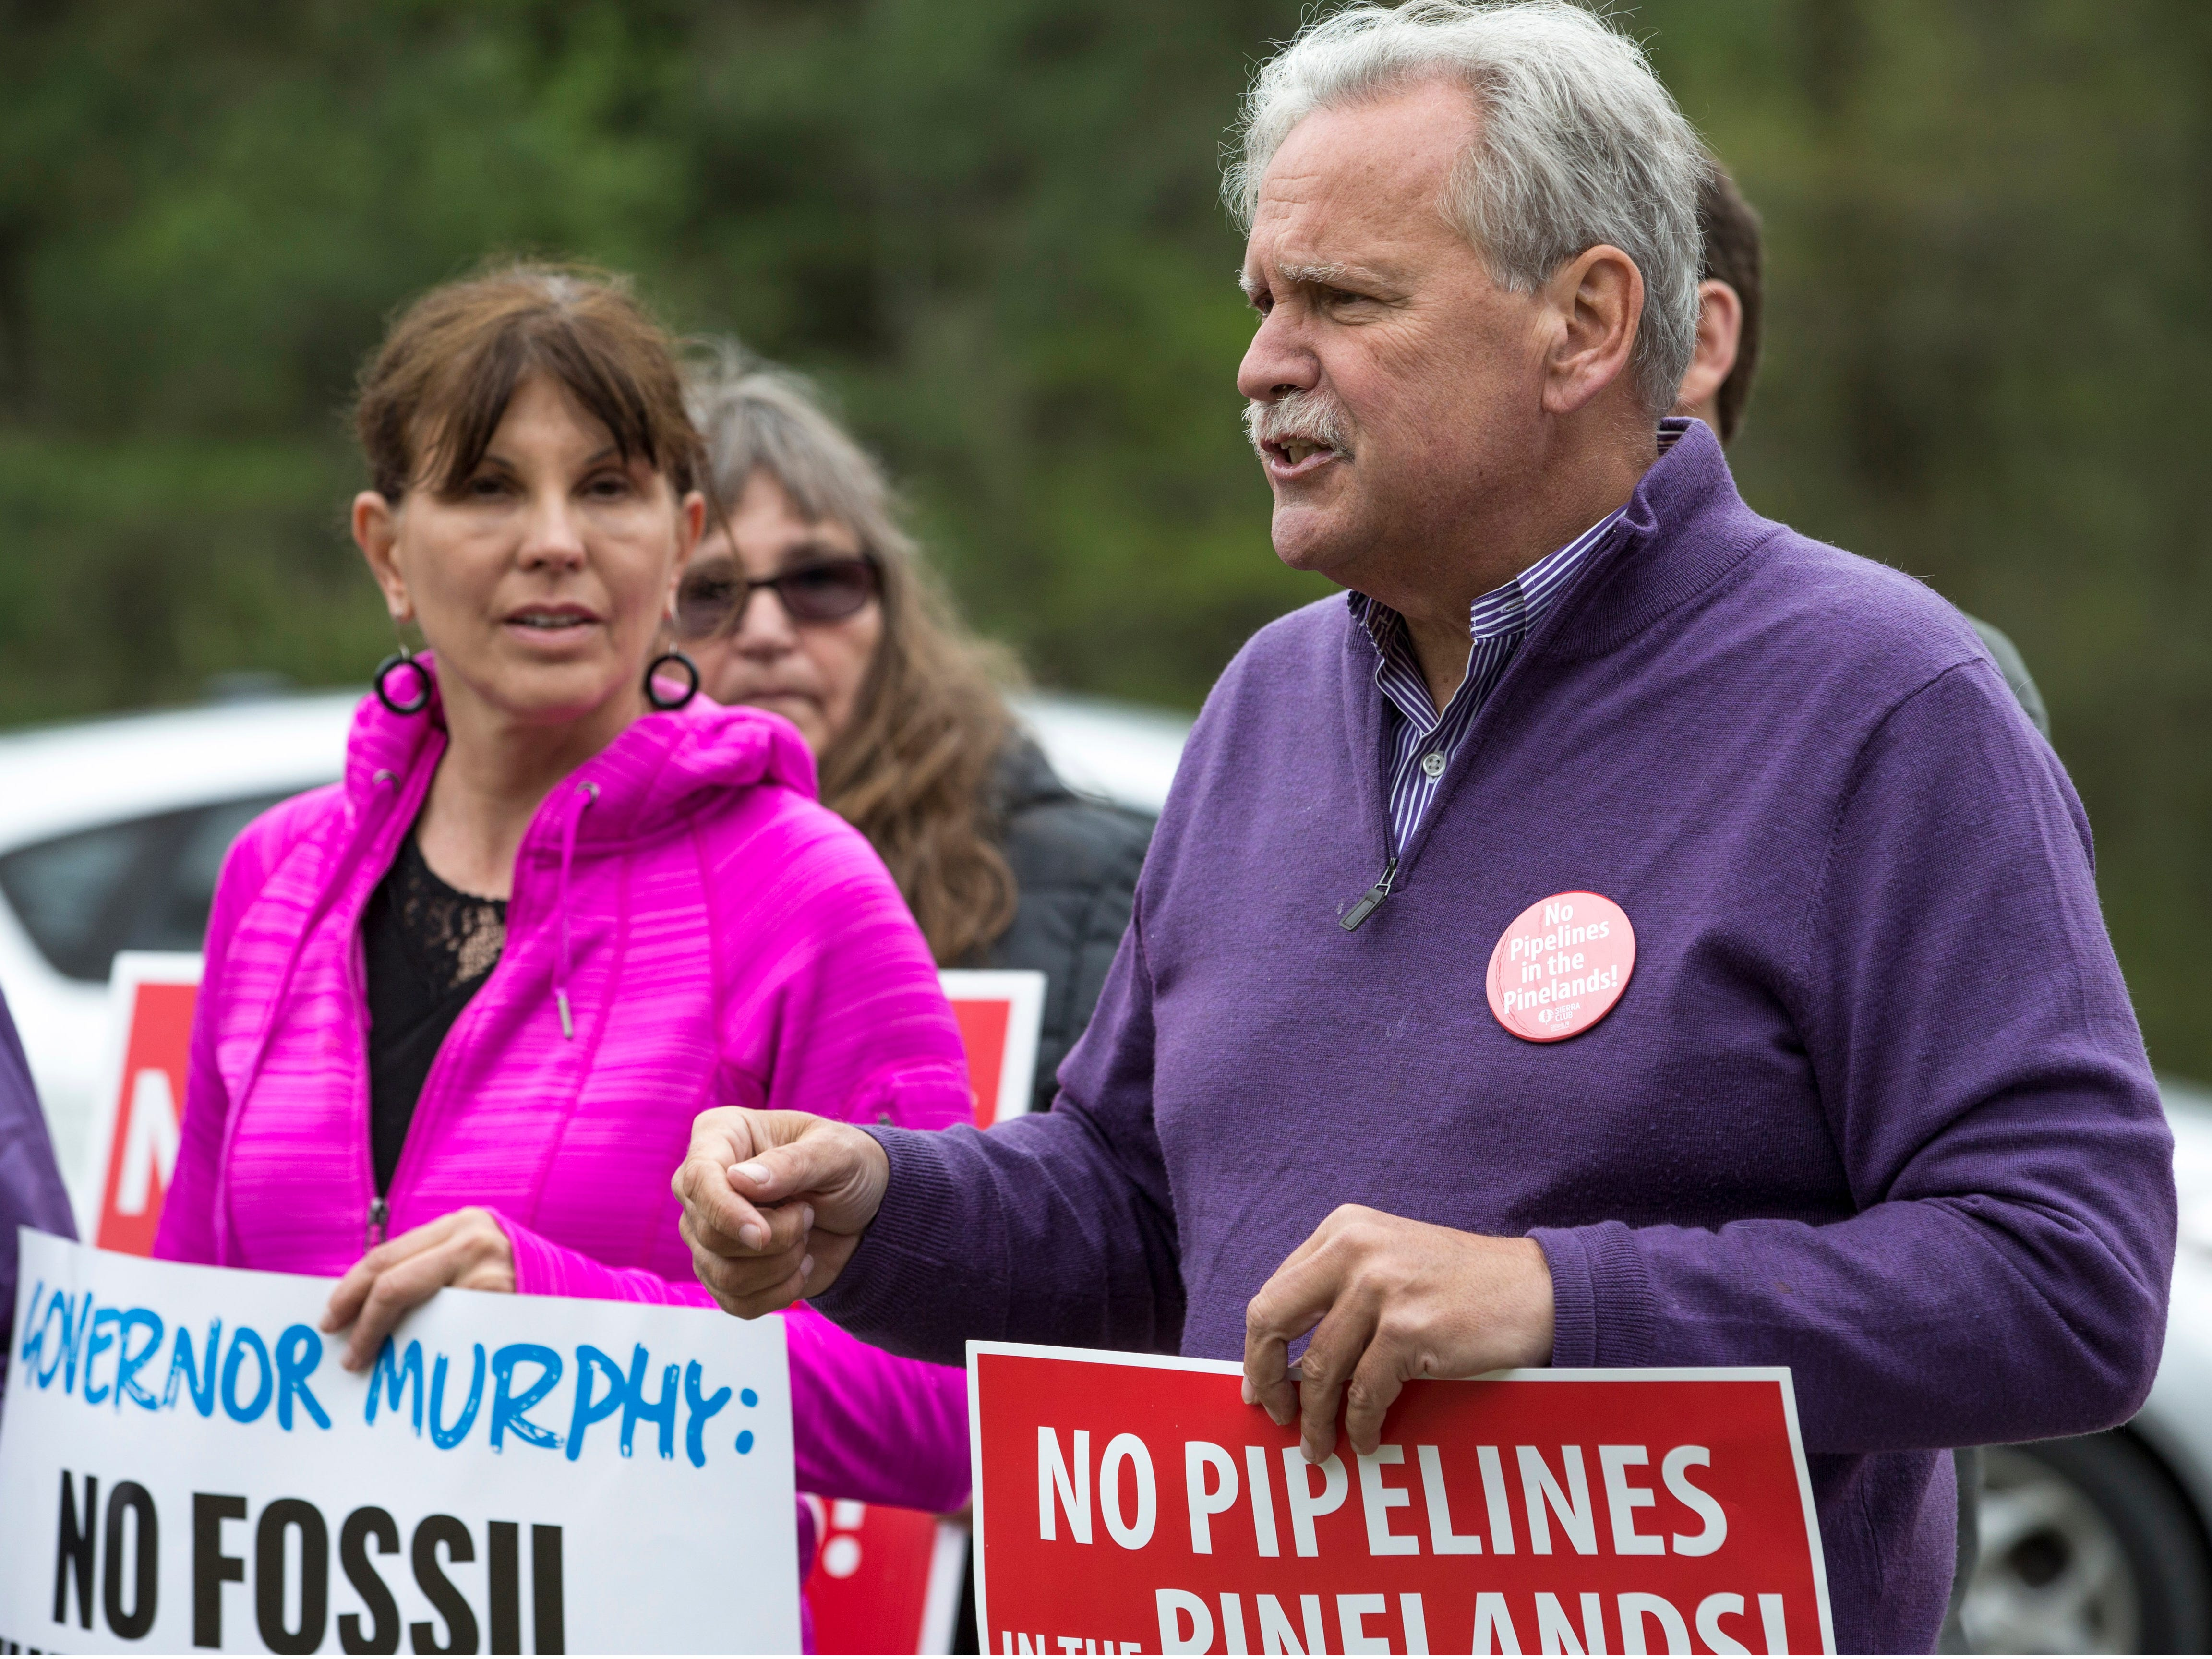 Jeff Tittel, director of the New Jersey Sierra Club, urges officials to put a stay on construction of the pipeline. On Friday, May 3rd, environmental advocates along with others hold a demonstration in opposition to the Southern Reliability Link (SRL) Pipeline. Despite being in ongoing litigation, NJNG's SRL pipeline has started construction in Ocean County, Burlington County and scenic areas of the Pinelands in Manchester. Manchester, NJFriday, May 3, 2019